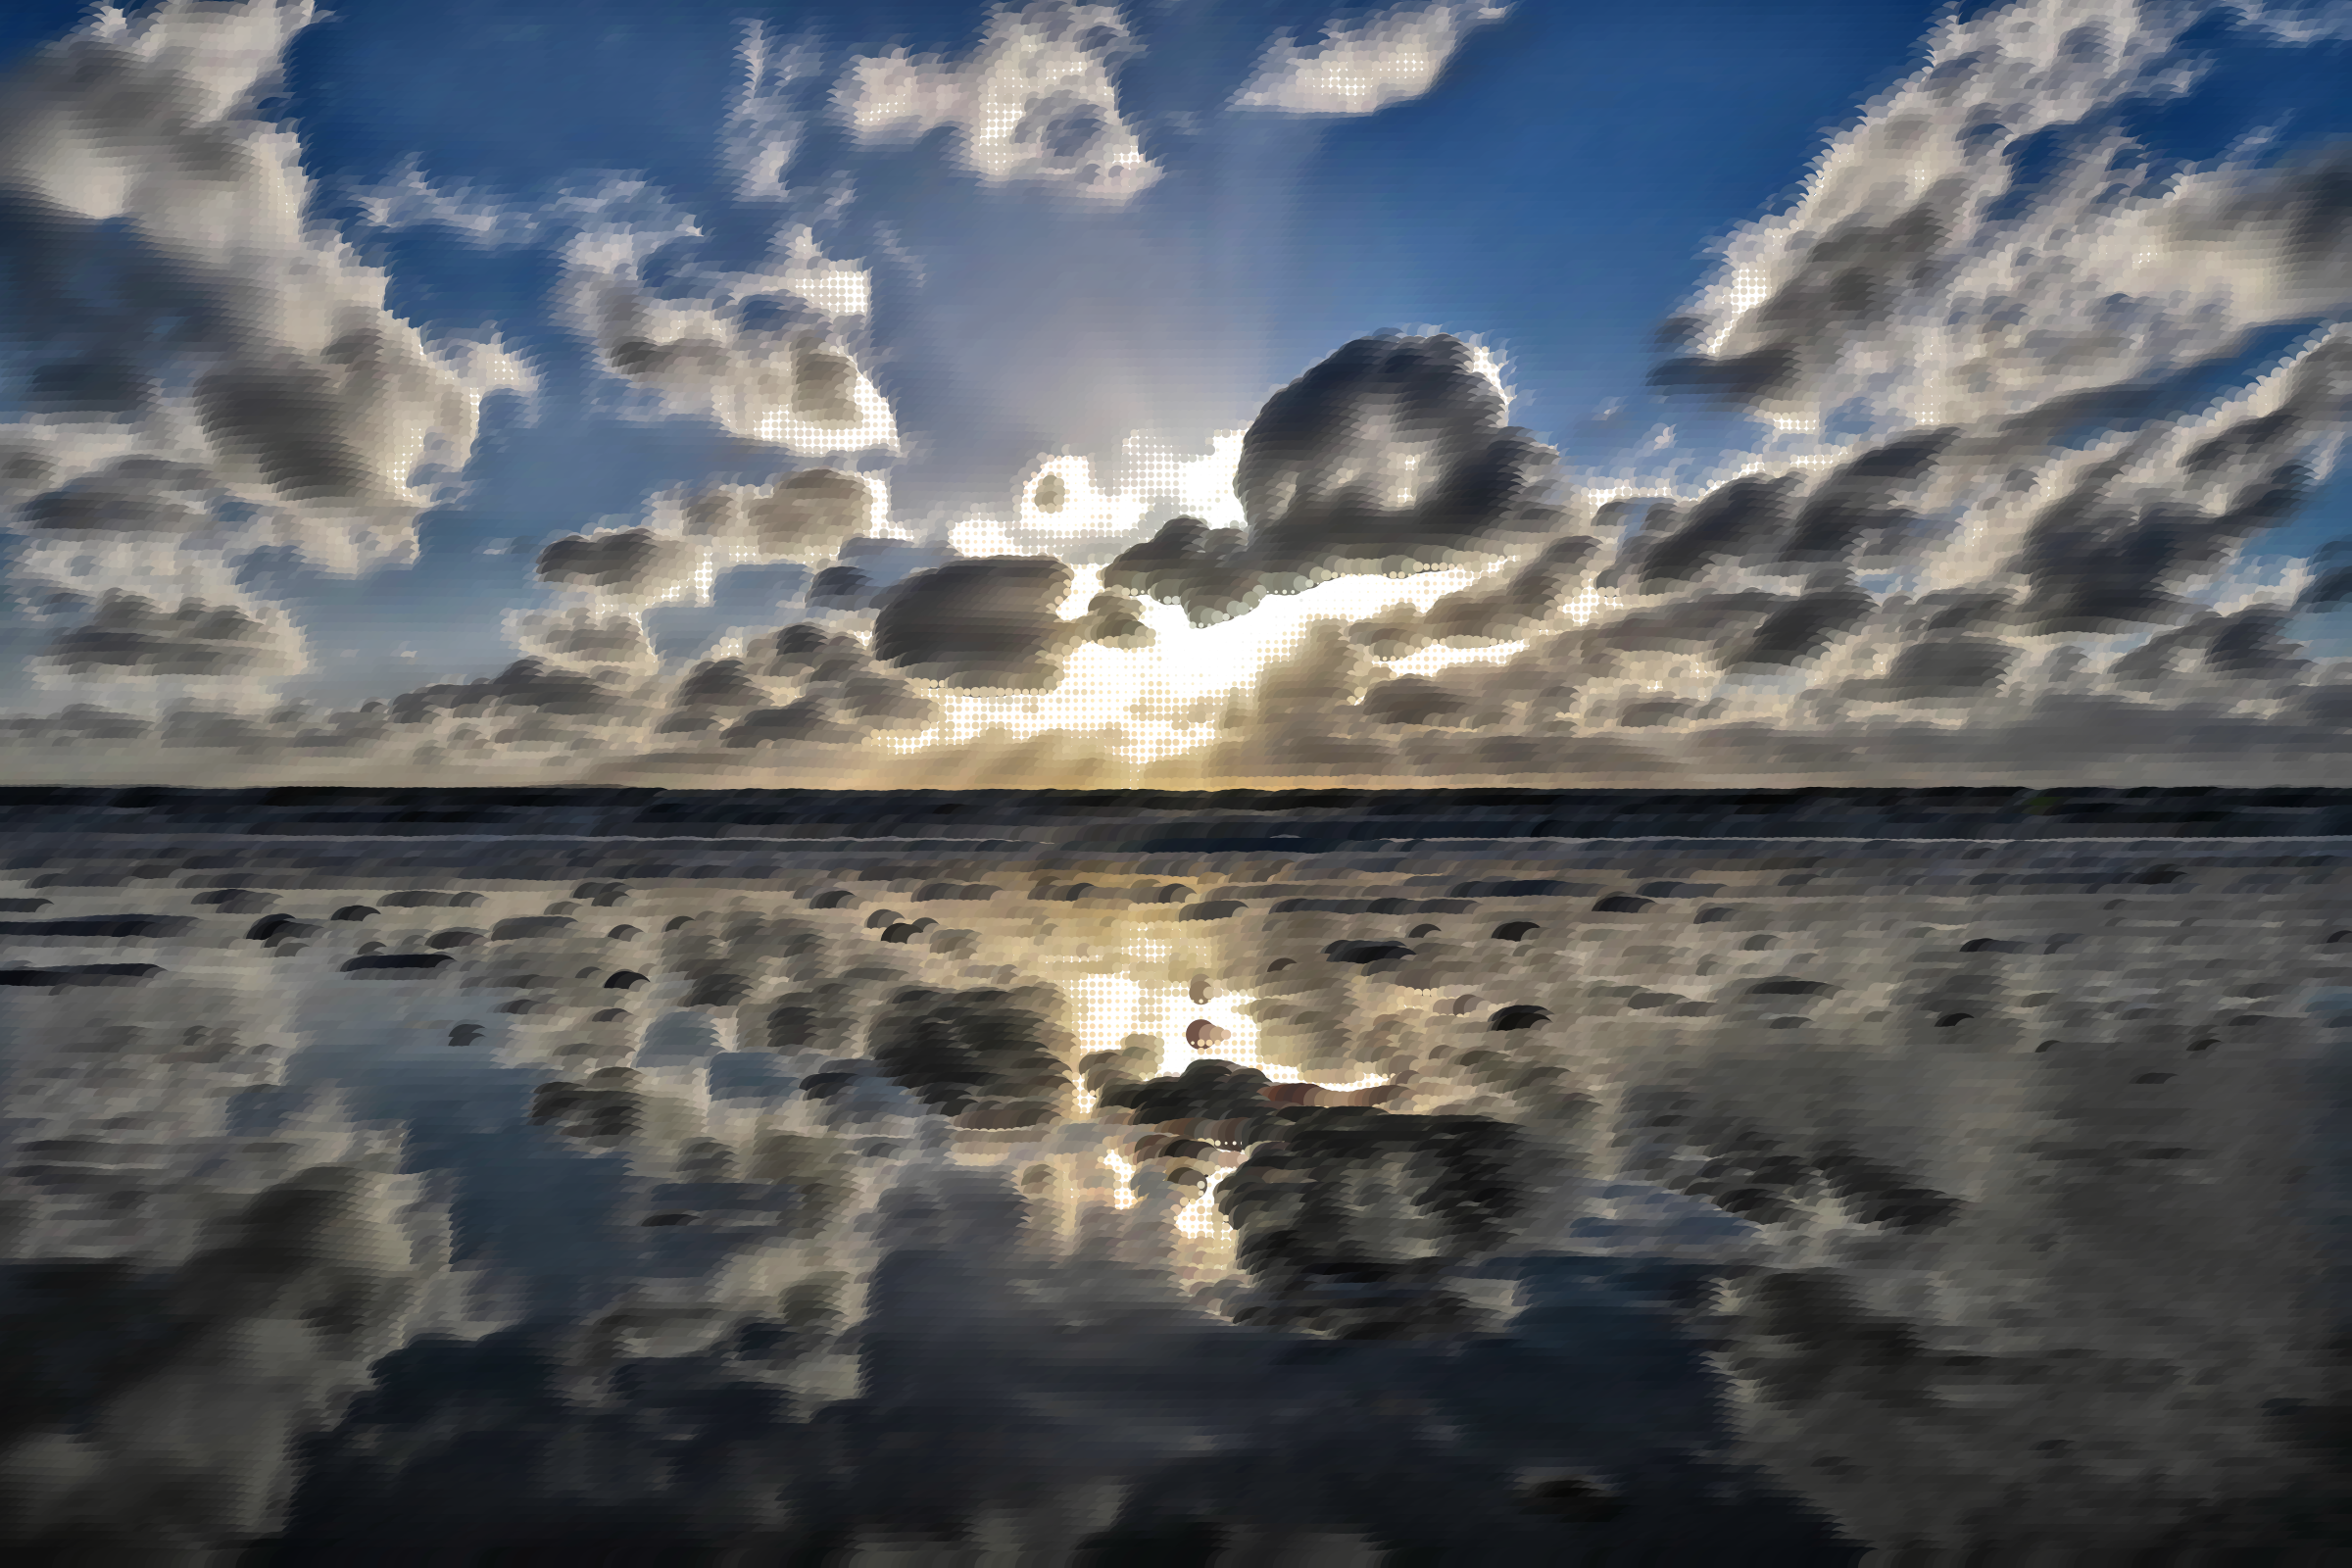 Surreal Cloudy Beach by GDJ